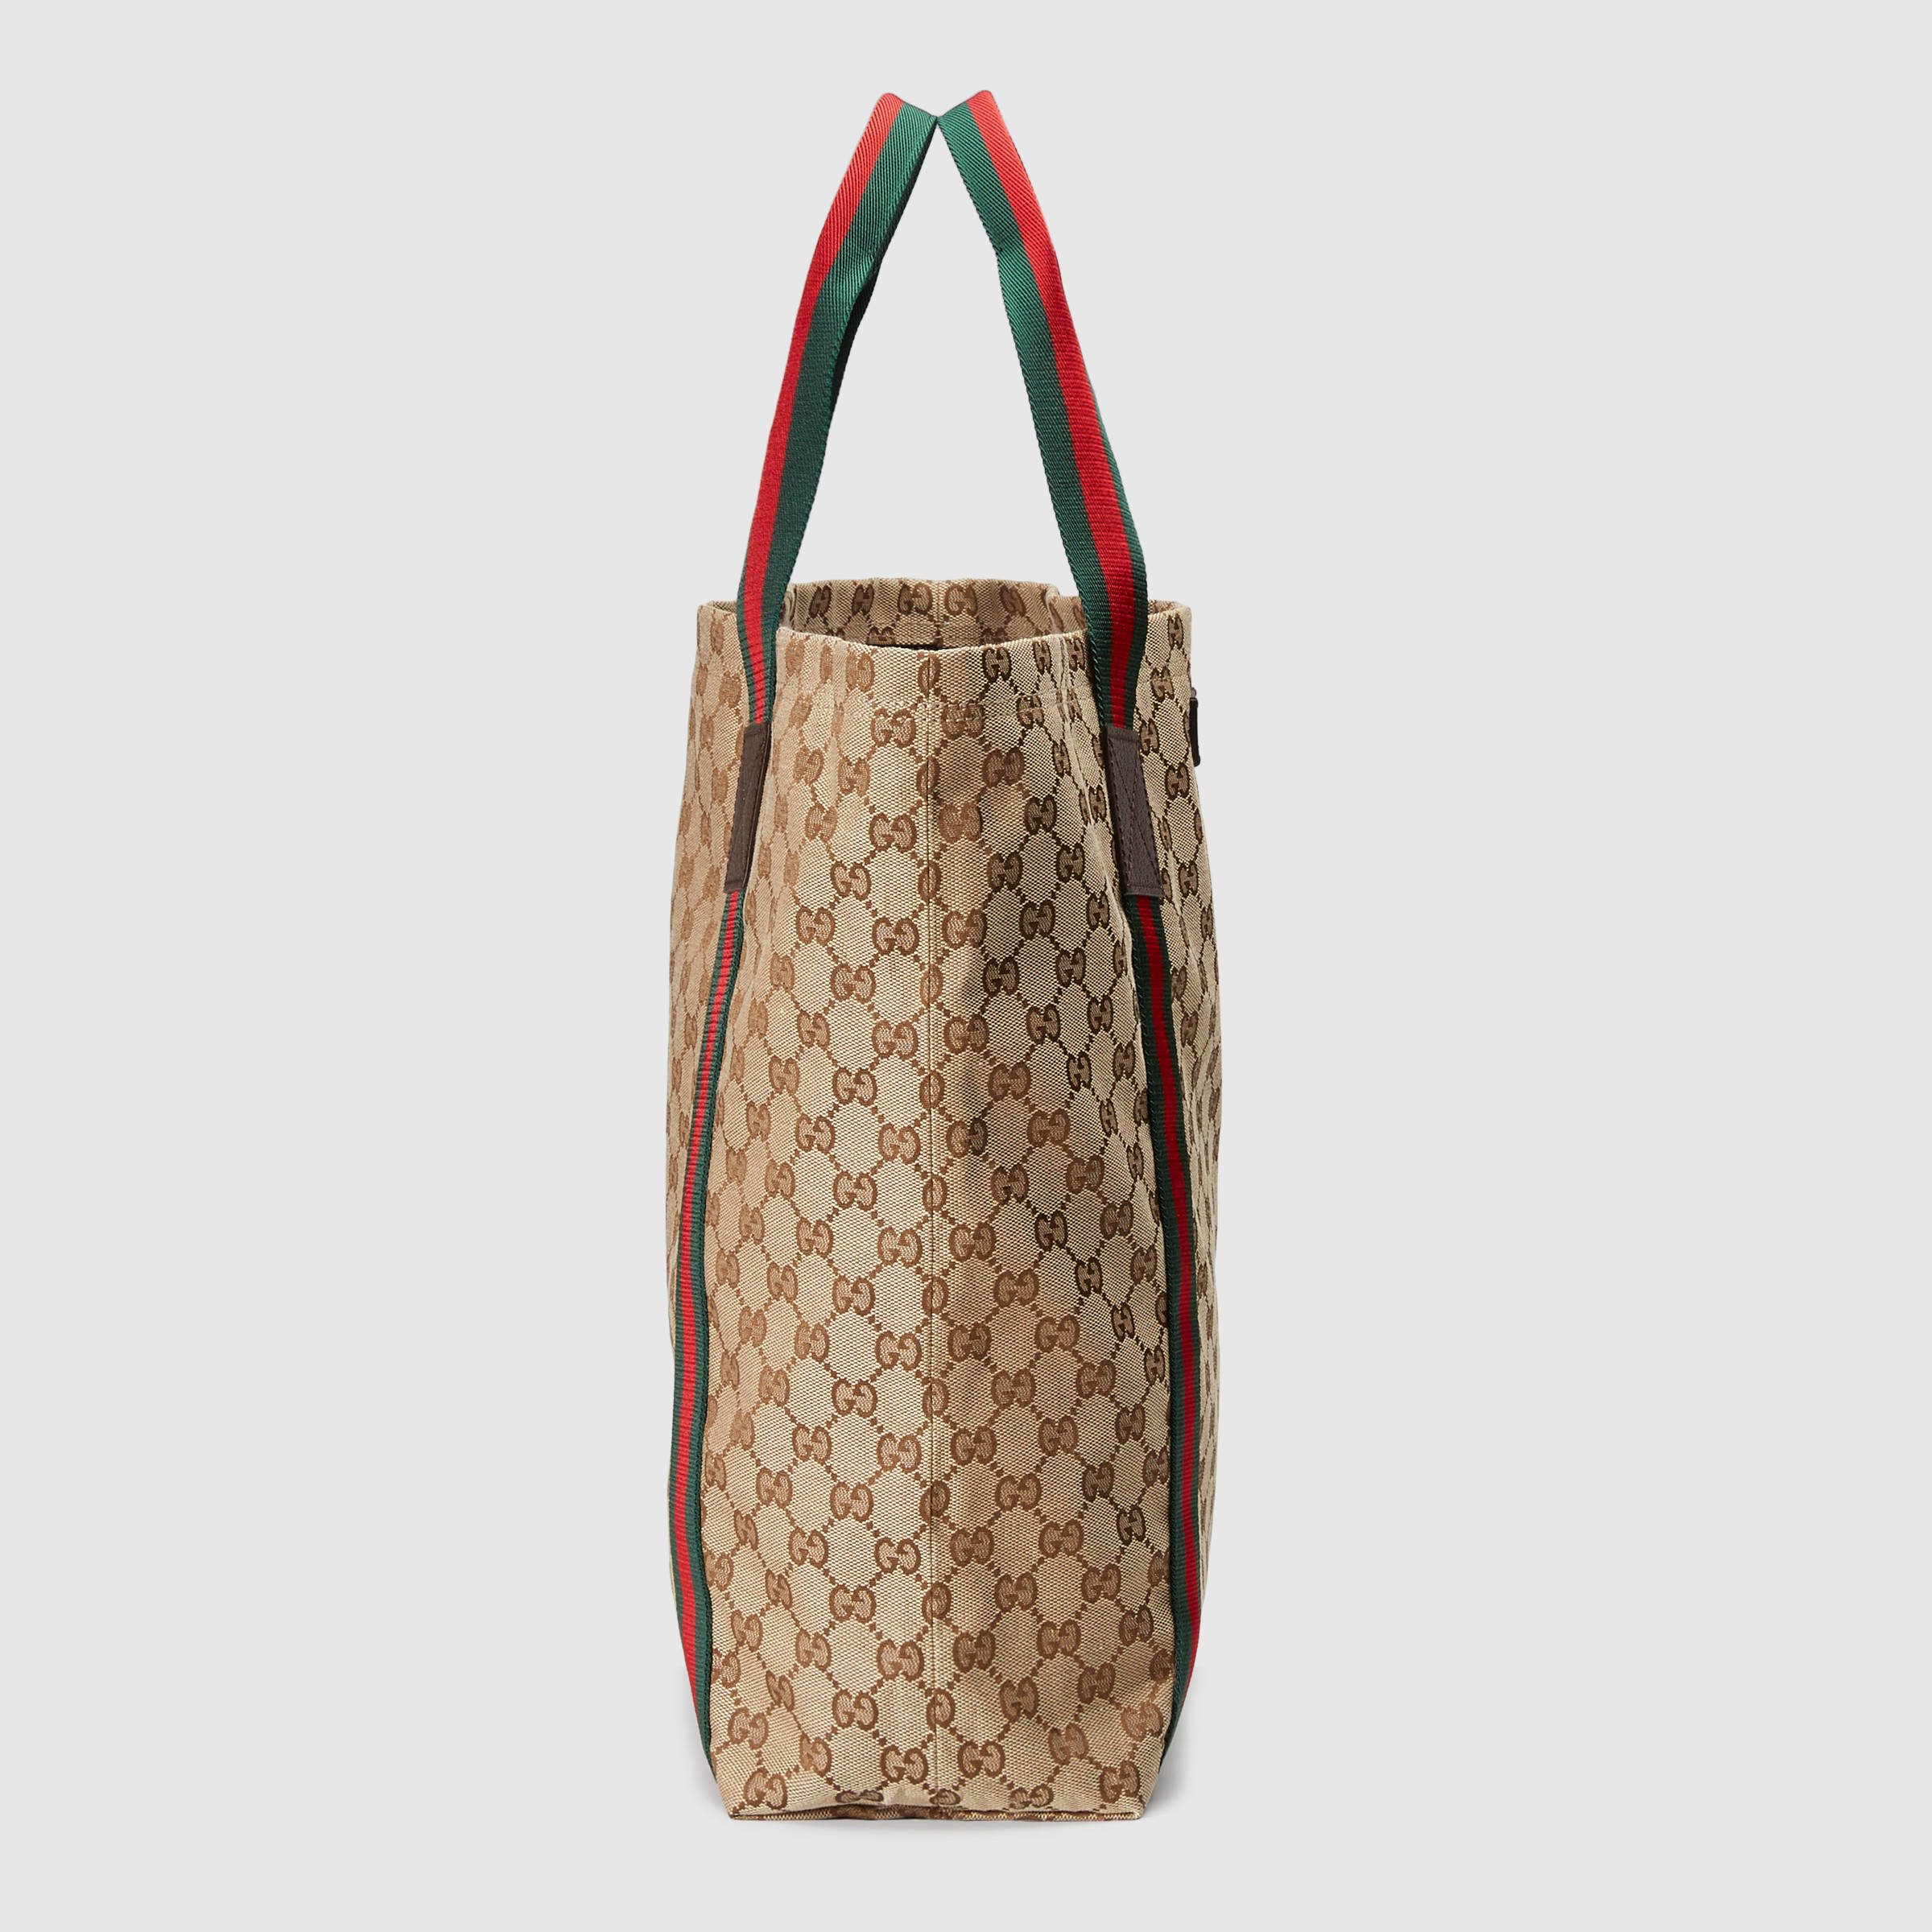 Gucci Original Gg Canvas Tote in Brown for Men - Lyst bc6a41a9aa224